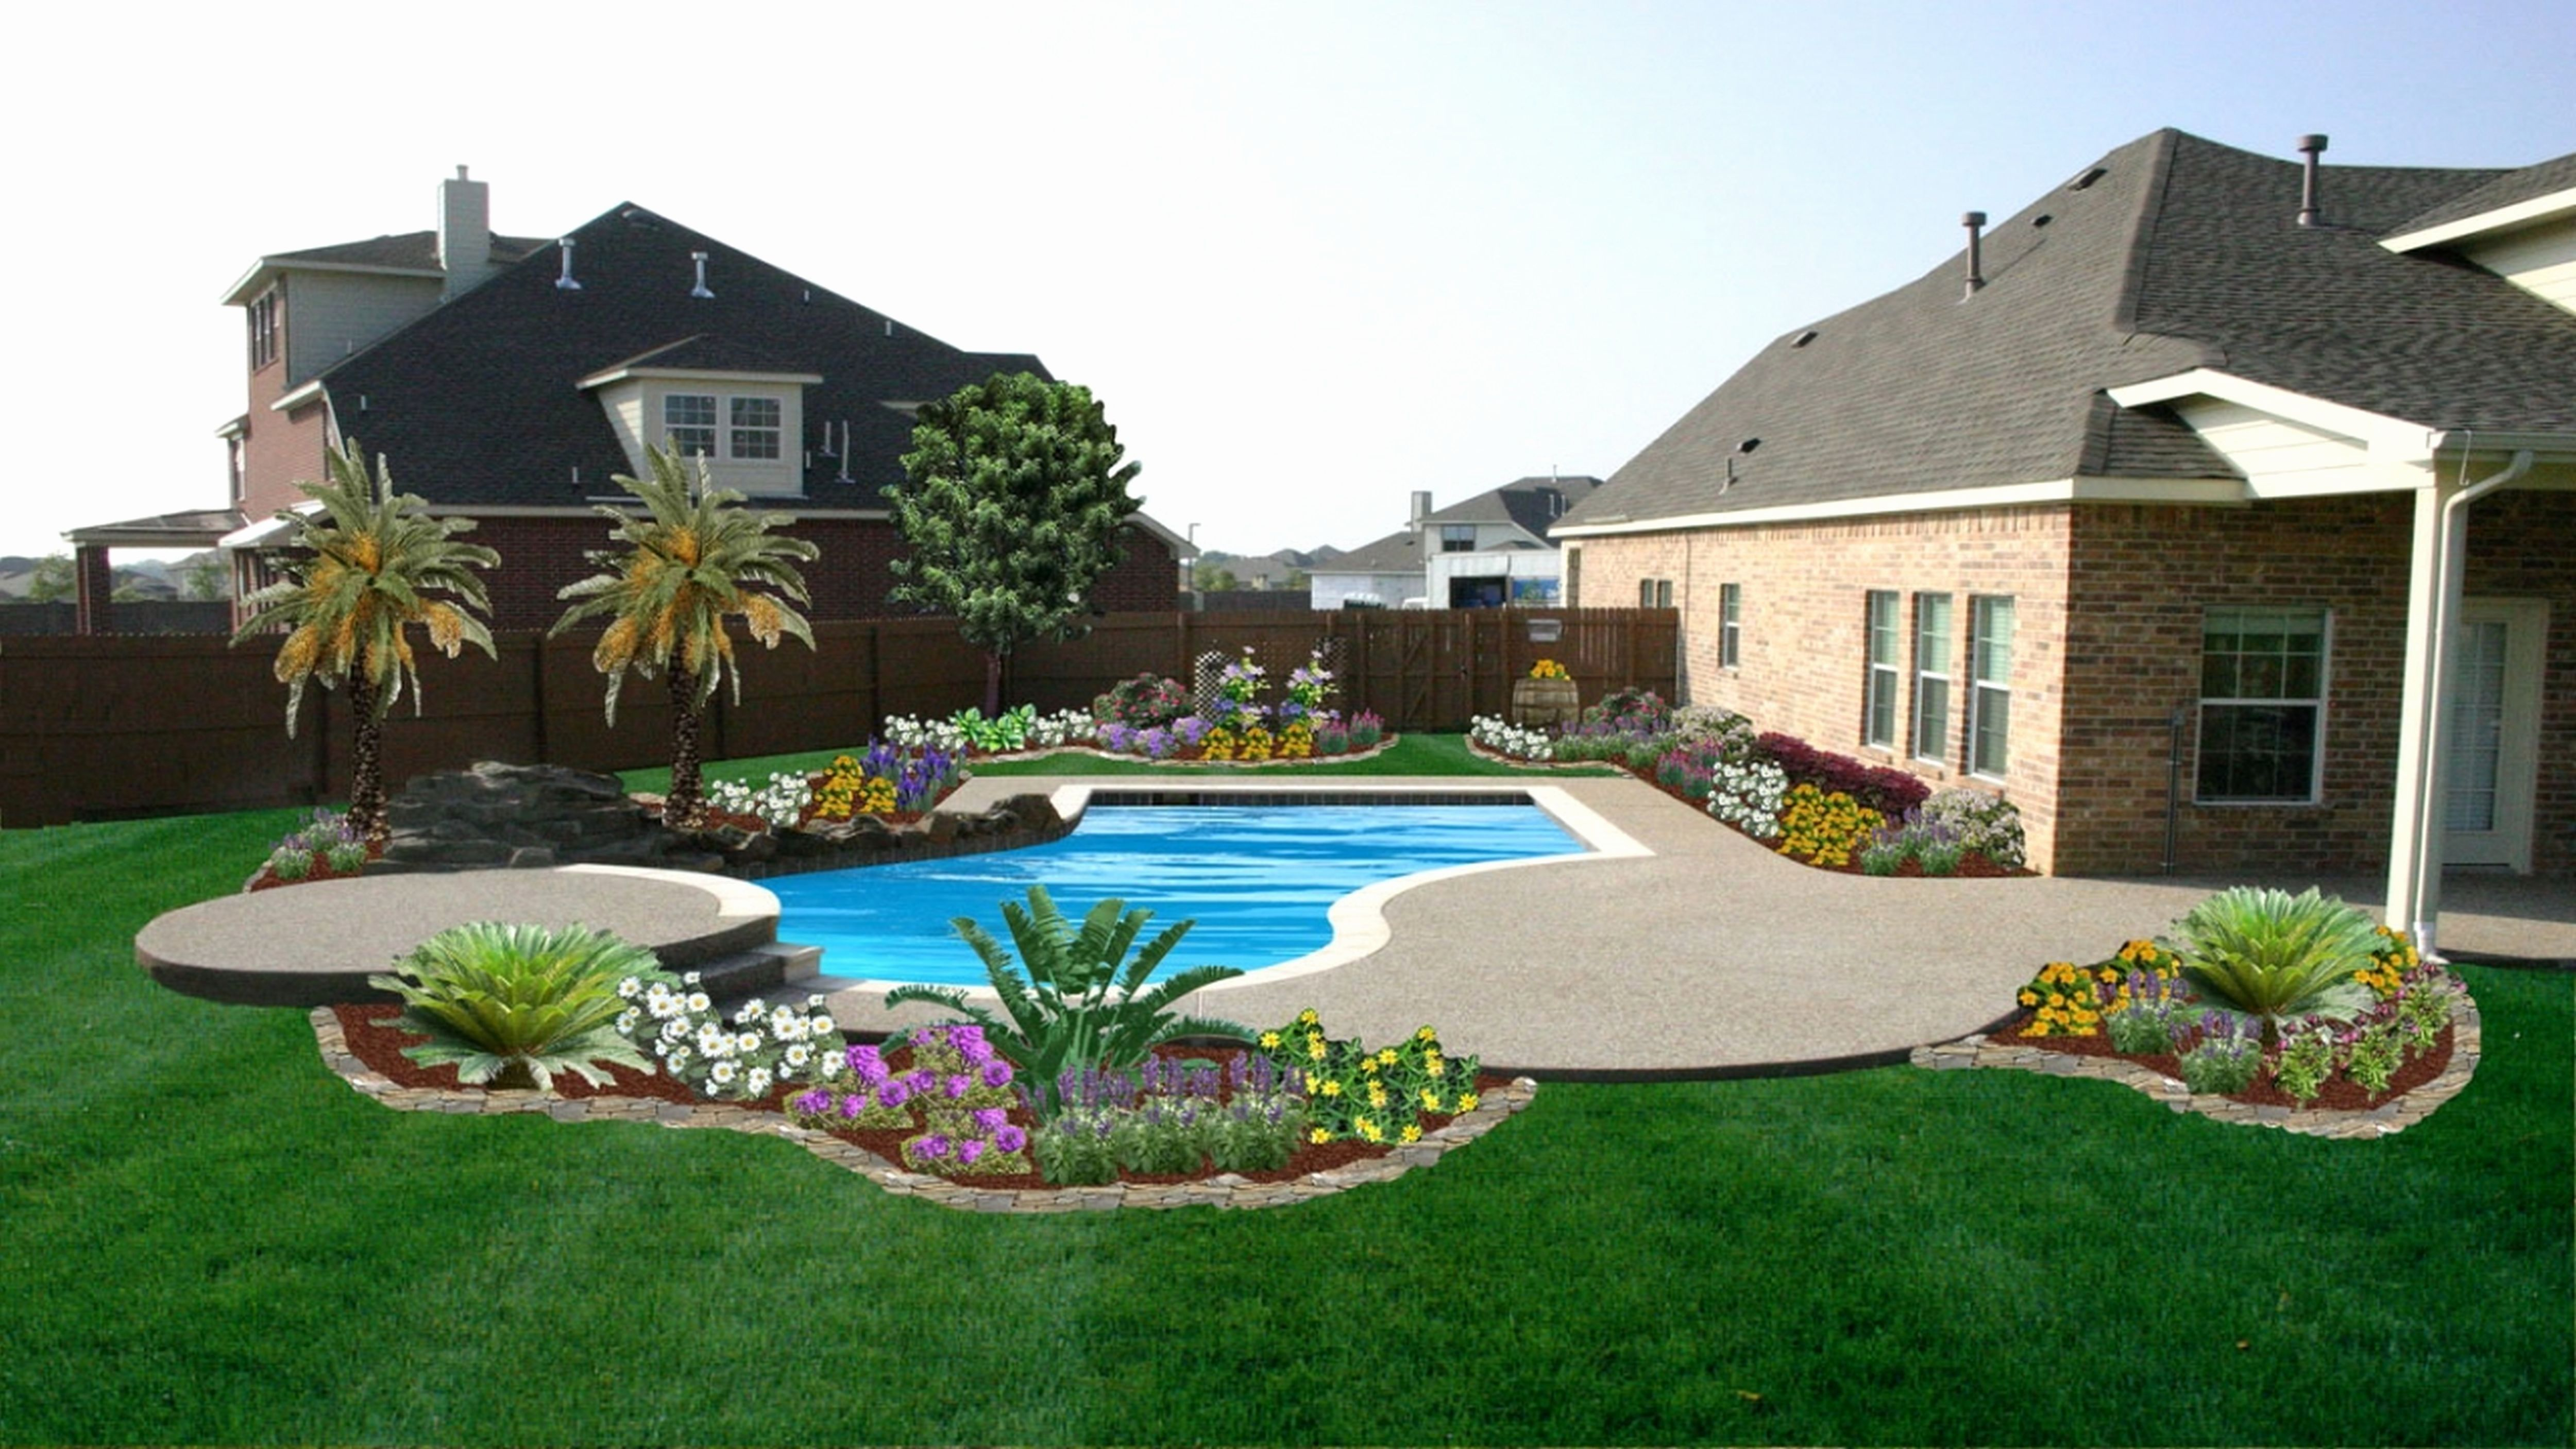 Landscape Ideas Around Pool Beautiful Backyard Landscaping ... on Backyard Inground Pool Landscaping Ideas id=59532